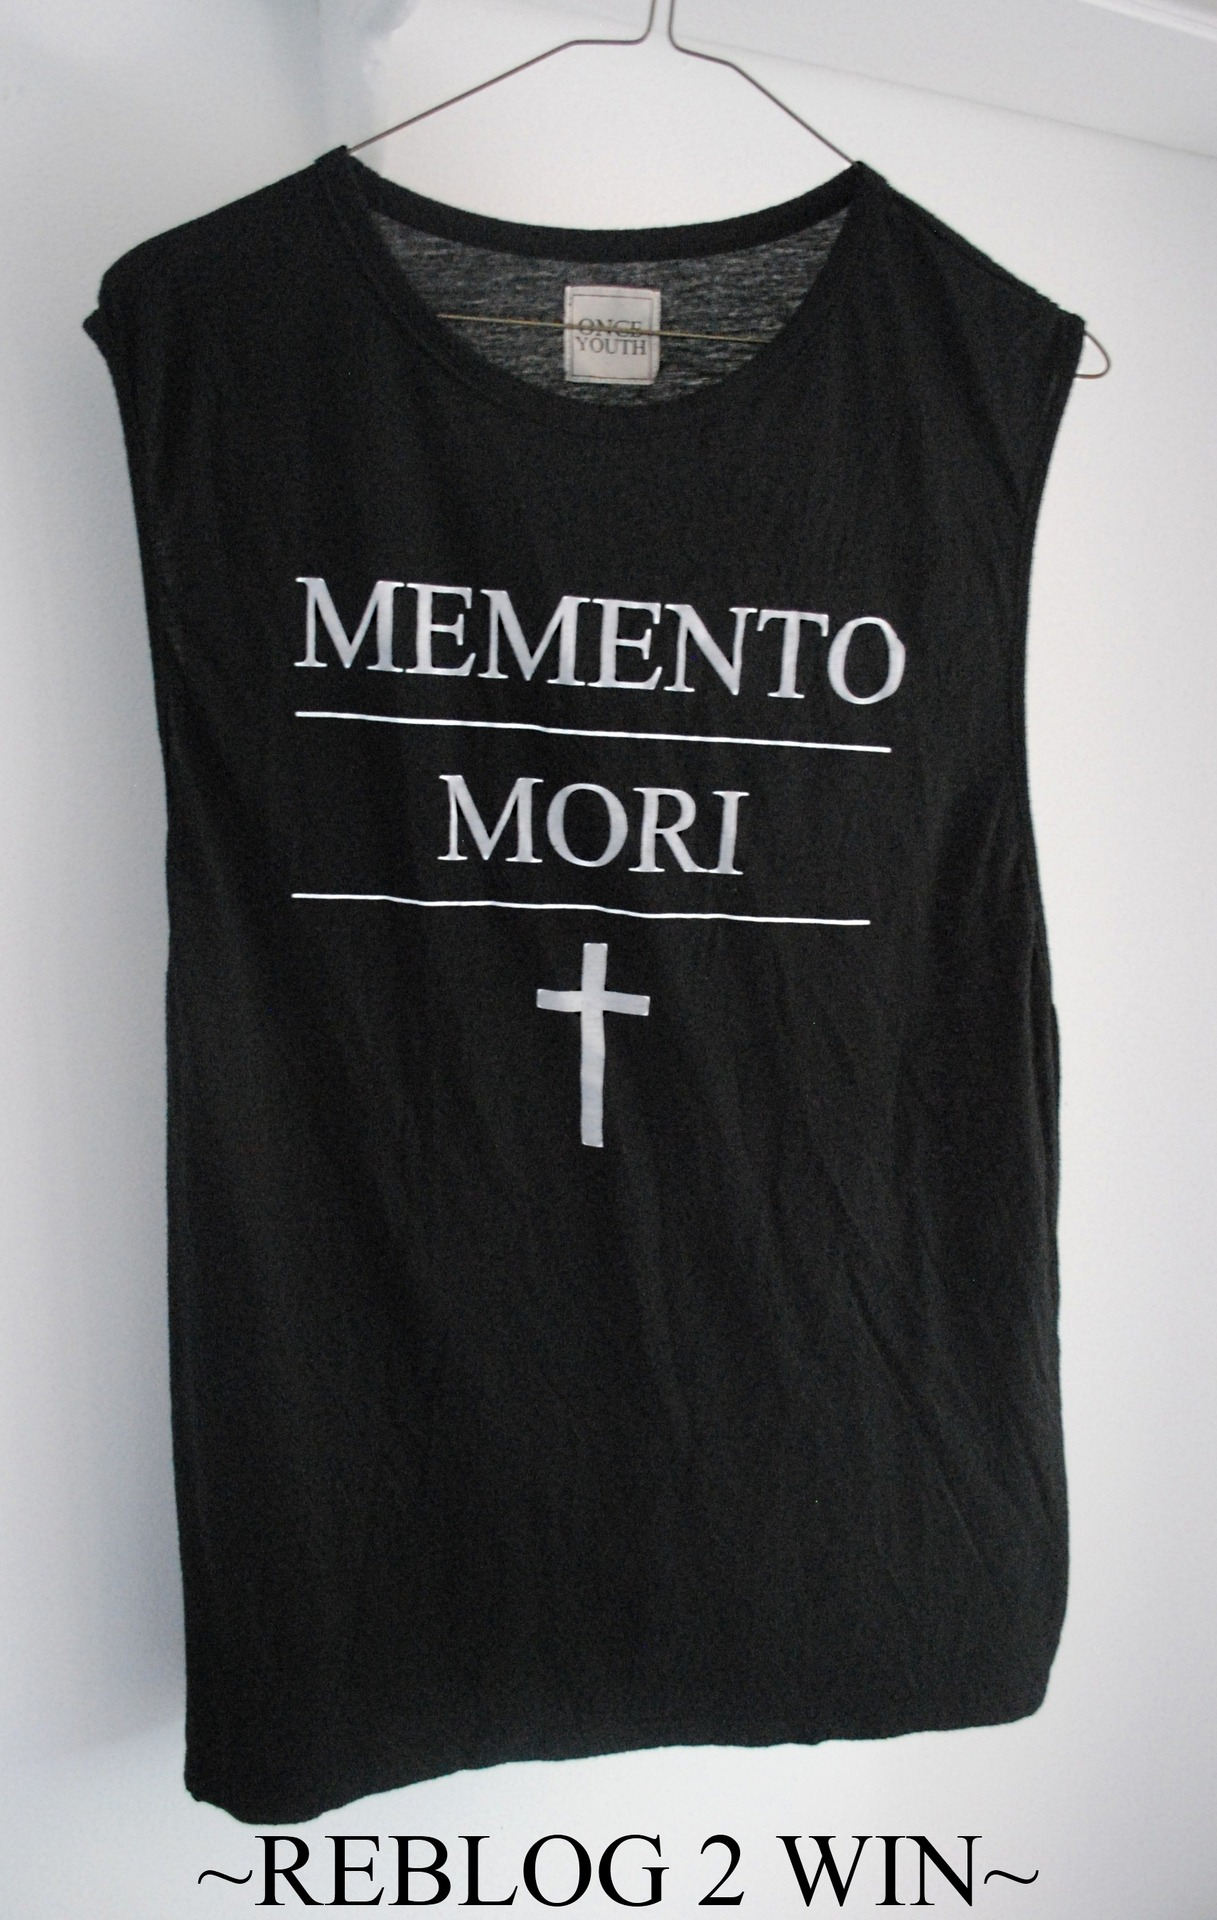 onceyouthcult:  Want Once Youth's Memento Mori Muscle Tank? We will chose a reblogger at random in one week. Good luck everyone!